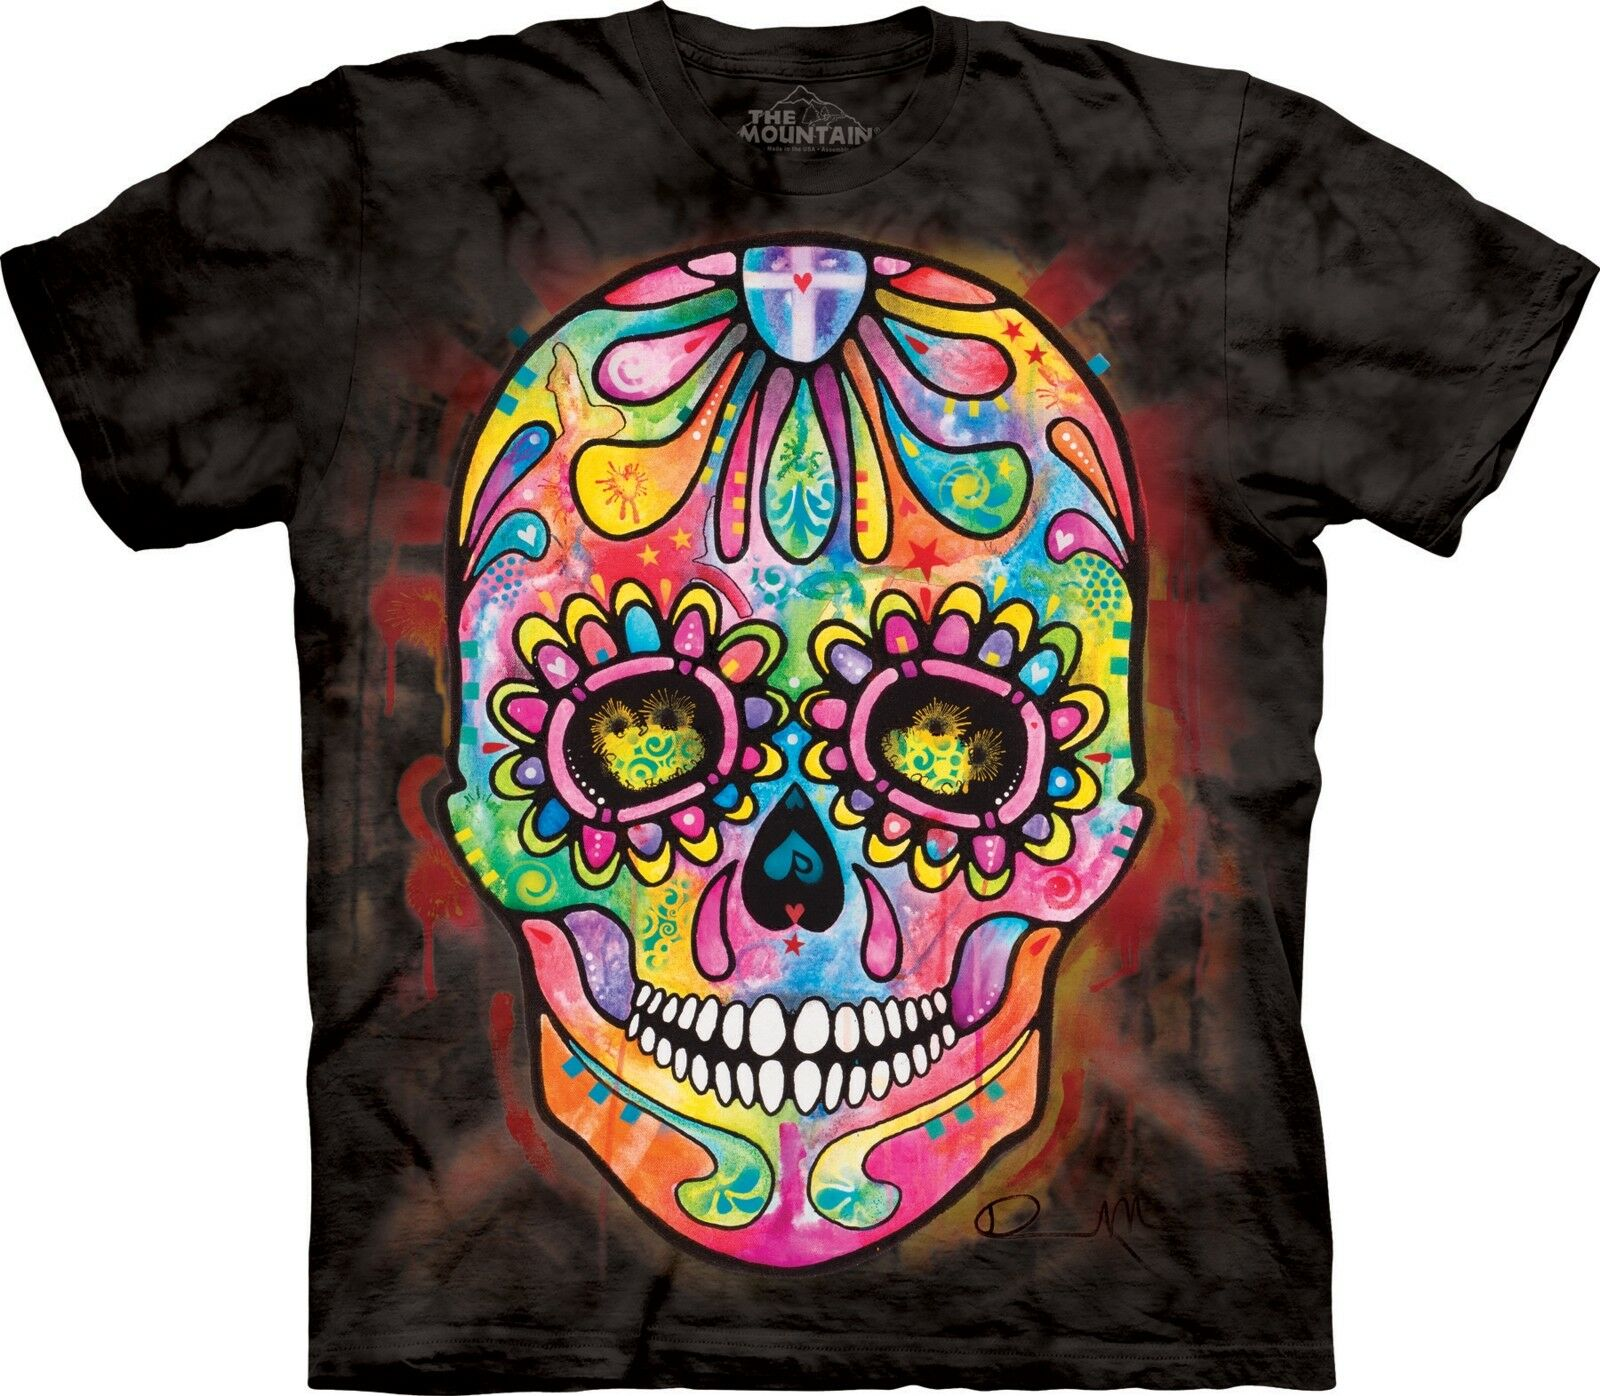 Day of Dead T Shirt Adult Unisex The Mountain